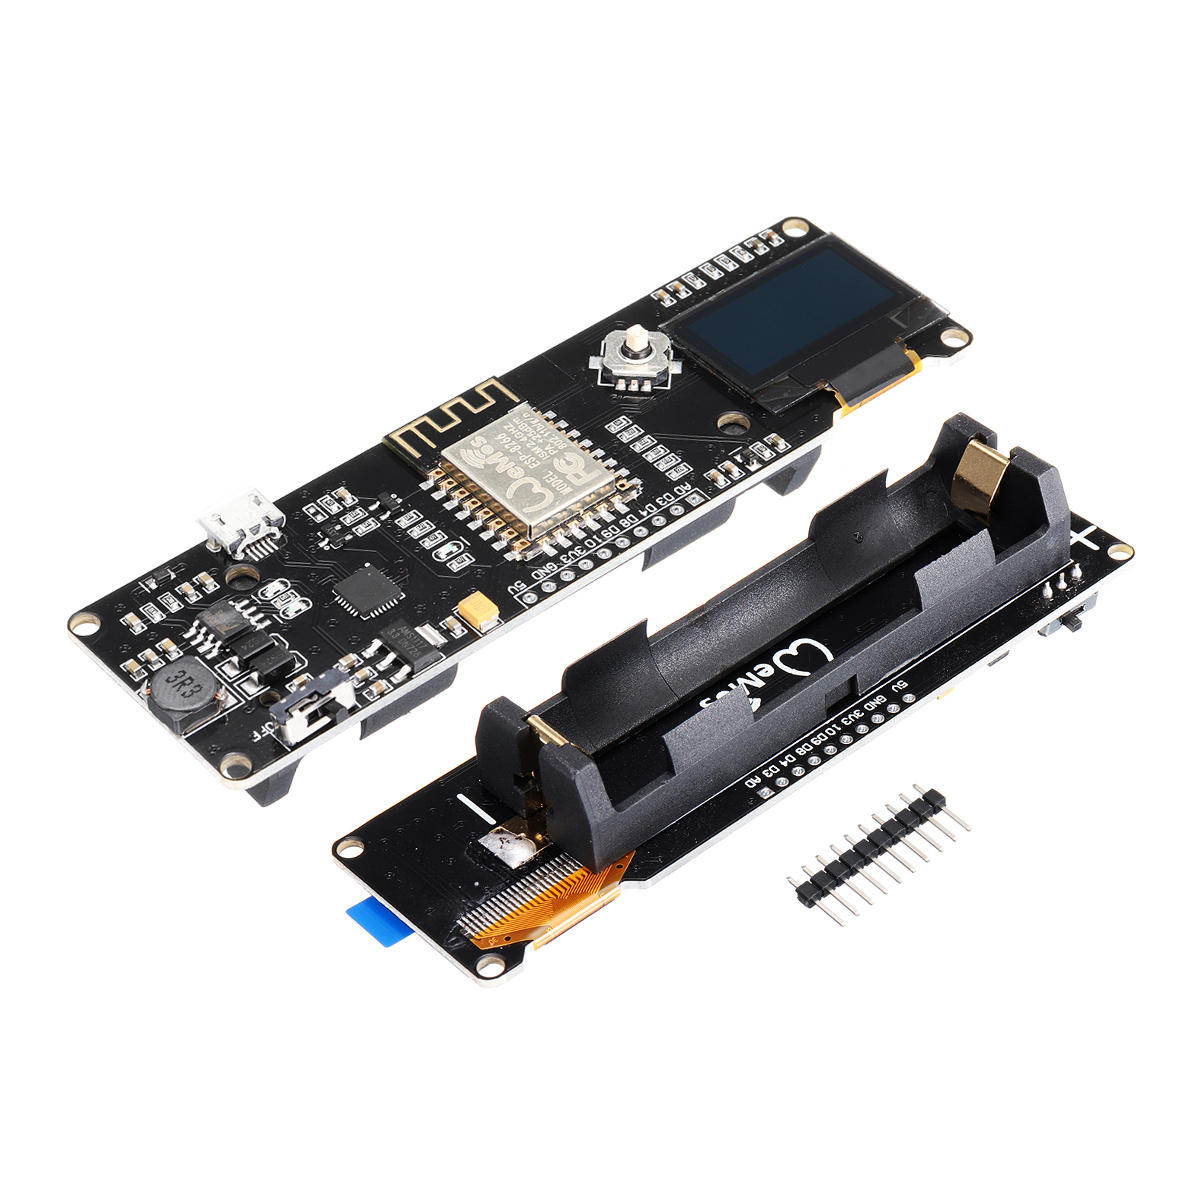 D1 ESP-Wroom-02 Motherboard ESP8266 Mini-WiFi NodeMCU Module ESP8266+18650 Battery+0.96 OLED Geekcreit for Arduino - products that work with official Arduino boards